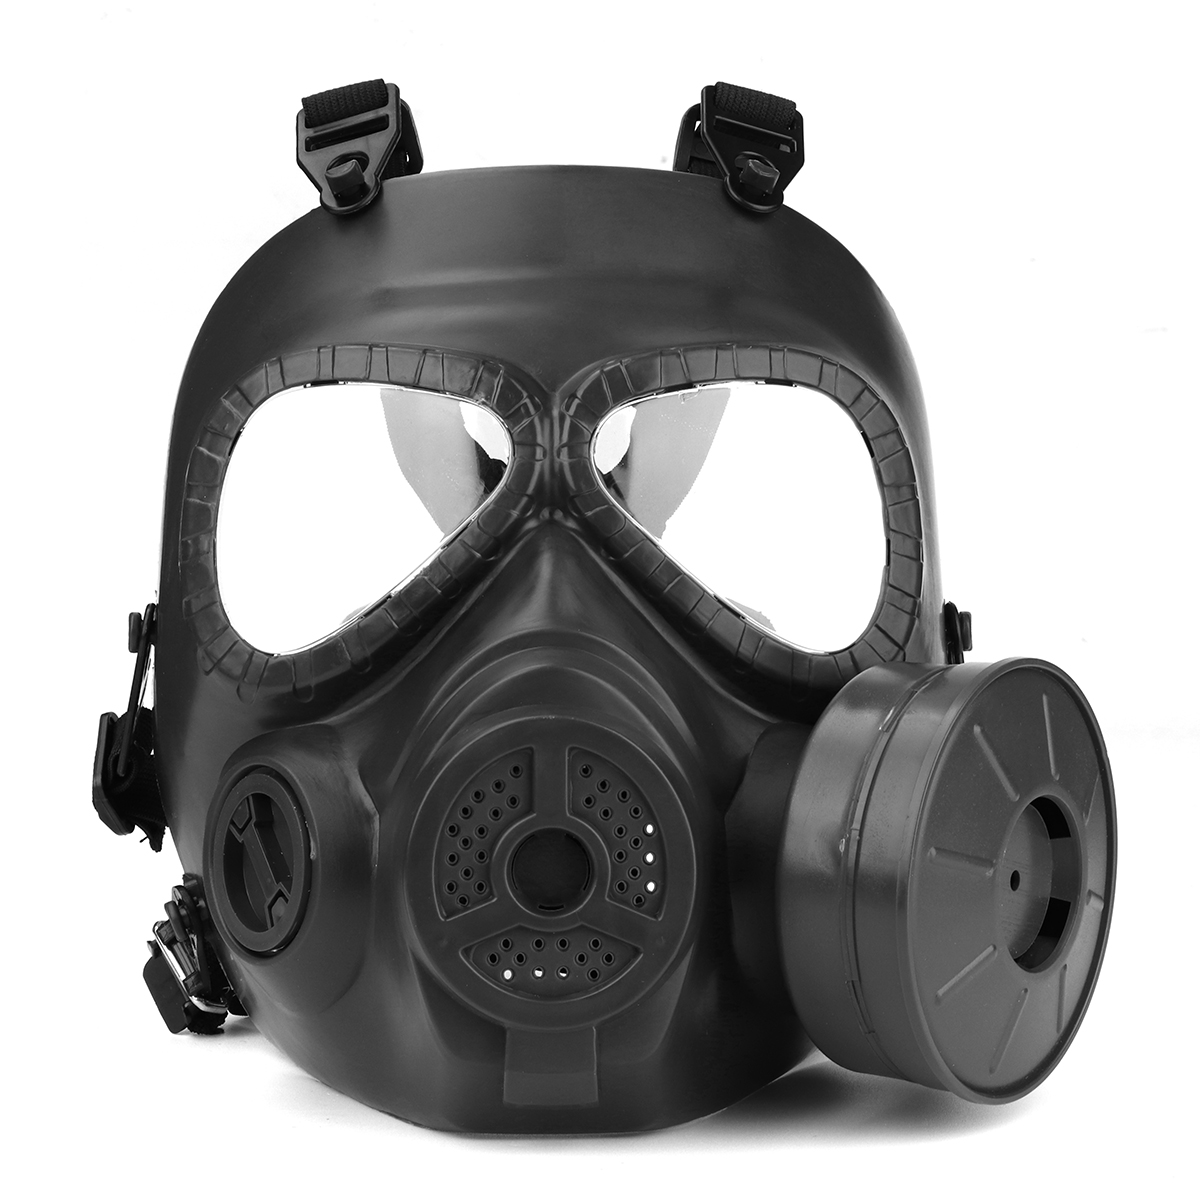 M04 Airsoft Paintball Dummy Gas Mask Fan For M04 Airsoft Paintball Dummy Gas Mask